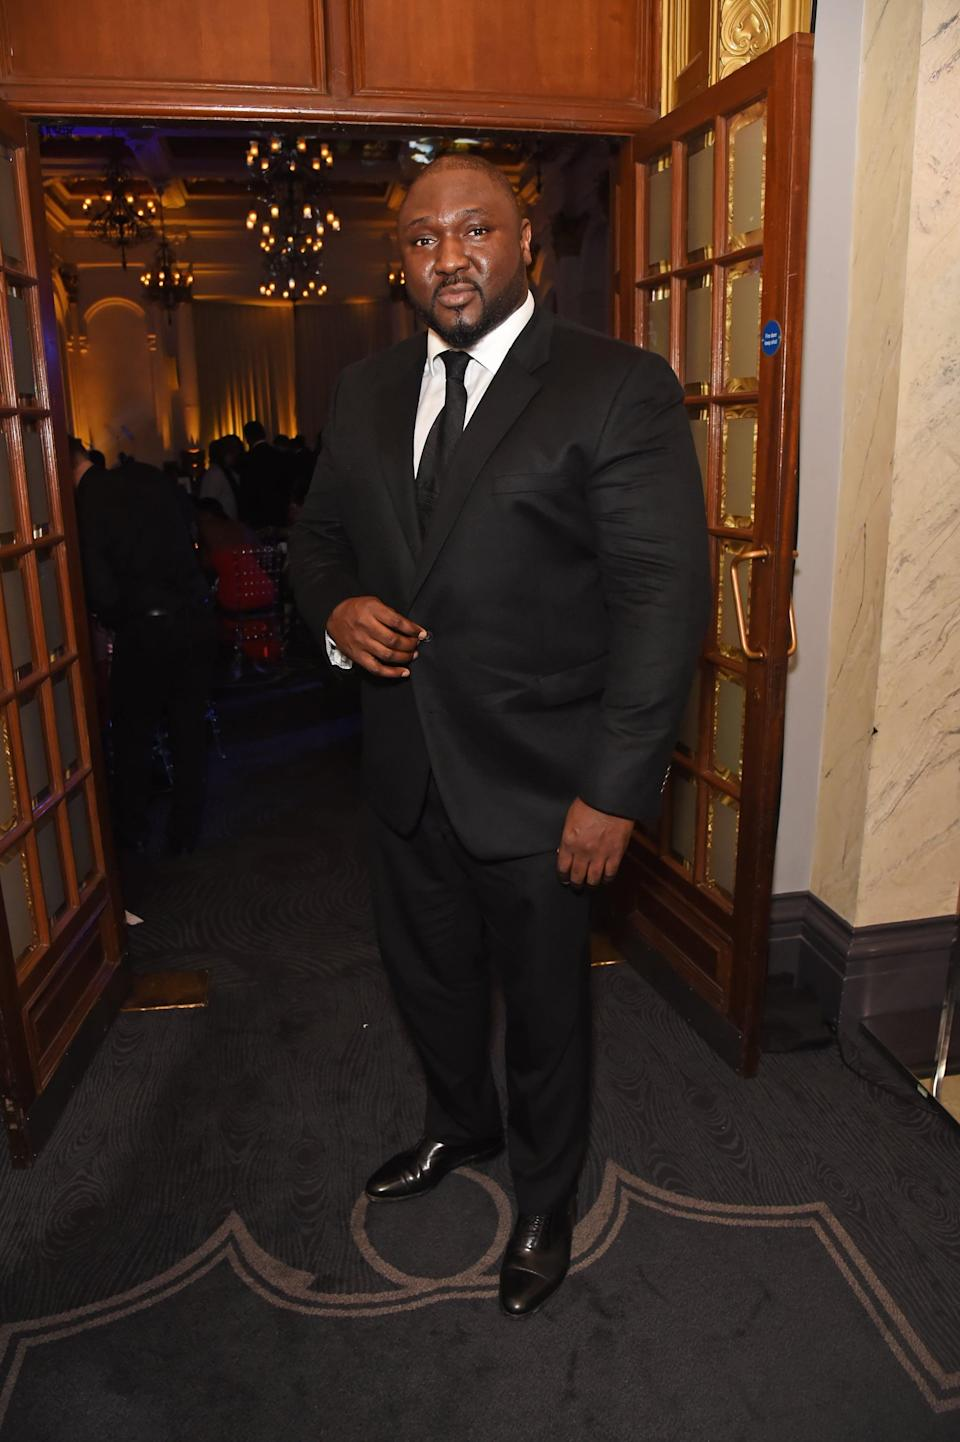 <p>Anozie is set to play Tommy Jepperd, a wandering loner who encounters Gus and joins him on a journey for answers. American audiences probably recognize Anozie either from his role as the Captain of the Guard in the 2015 live-action <strong>Cinderella</strong> or as Xaro Xhoan Daxos on <strong>Game of Thrones</strong>.</p>